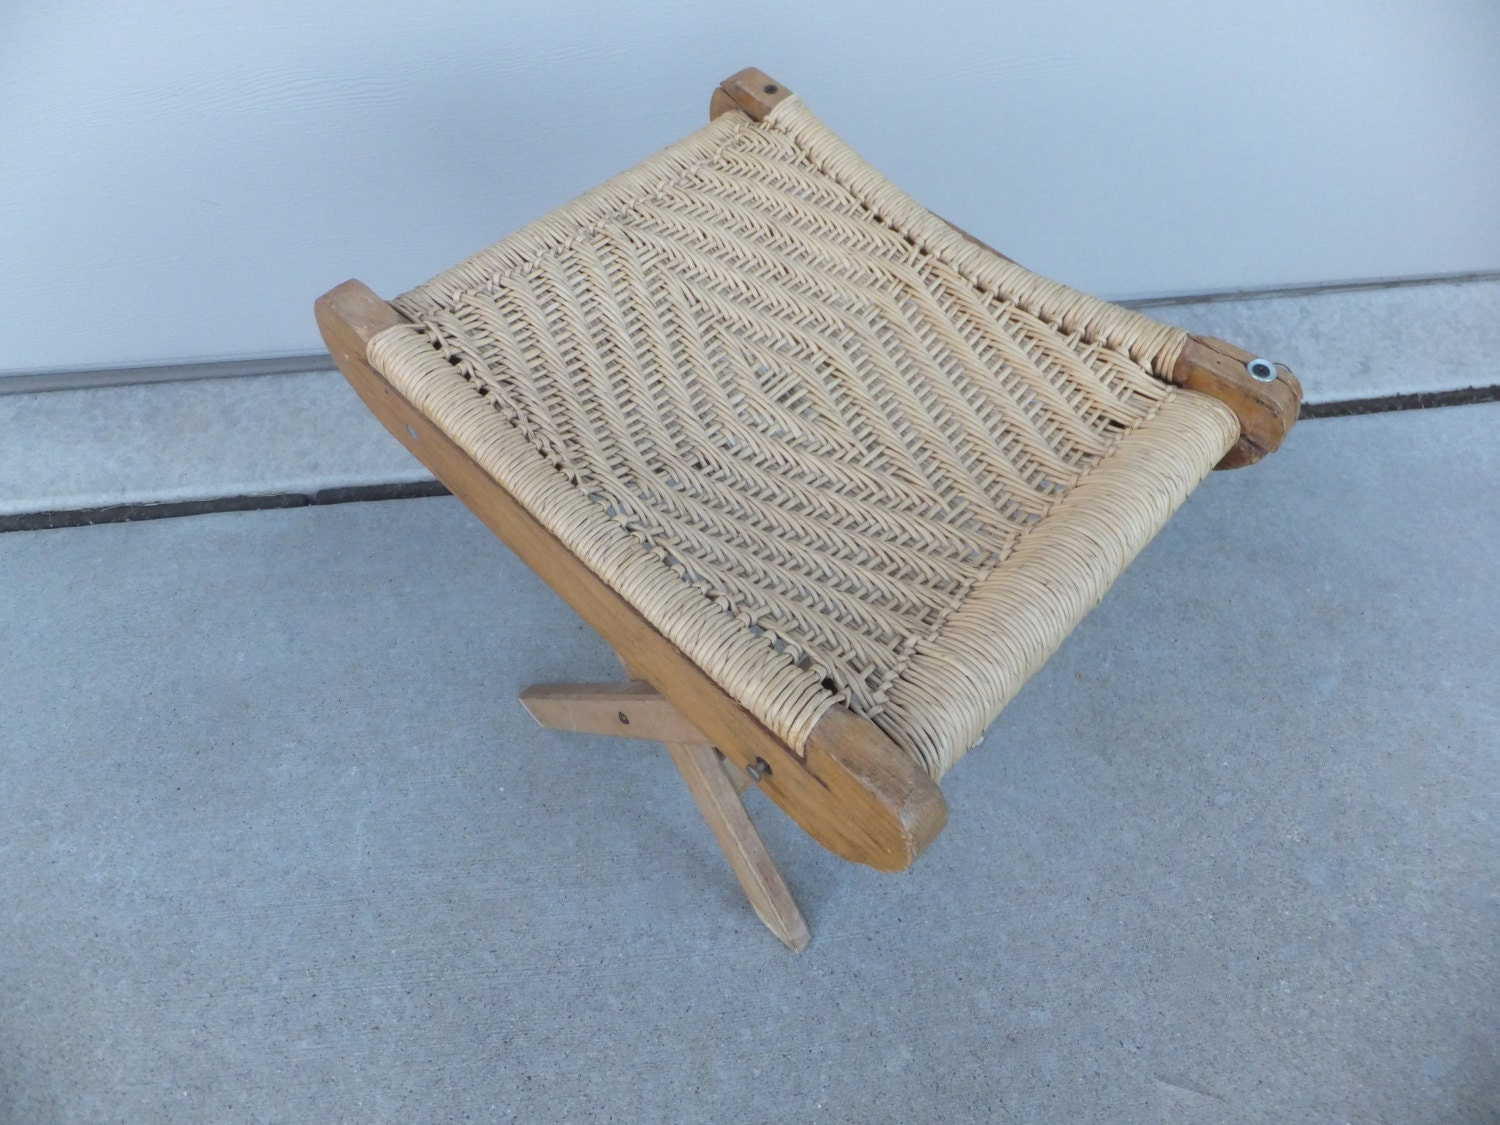 Vintage Primitive Wood Stool Footrest Footstool by  : il570xN5299610682whq from www.etsy.com size 570 x 428 jpeg 48kB